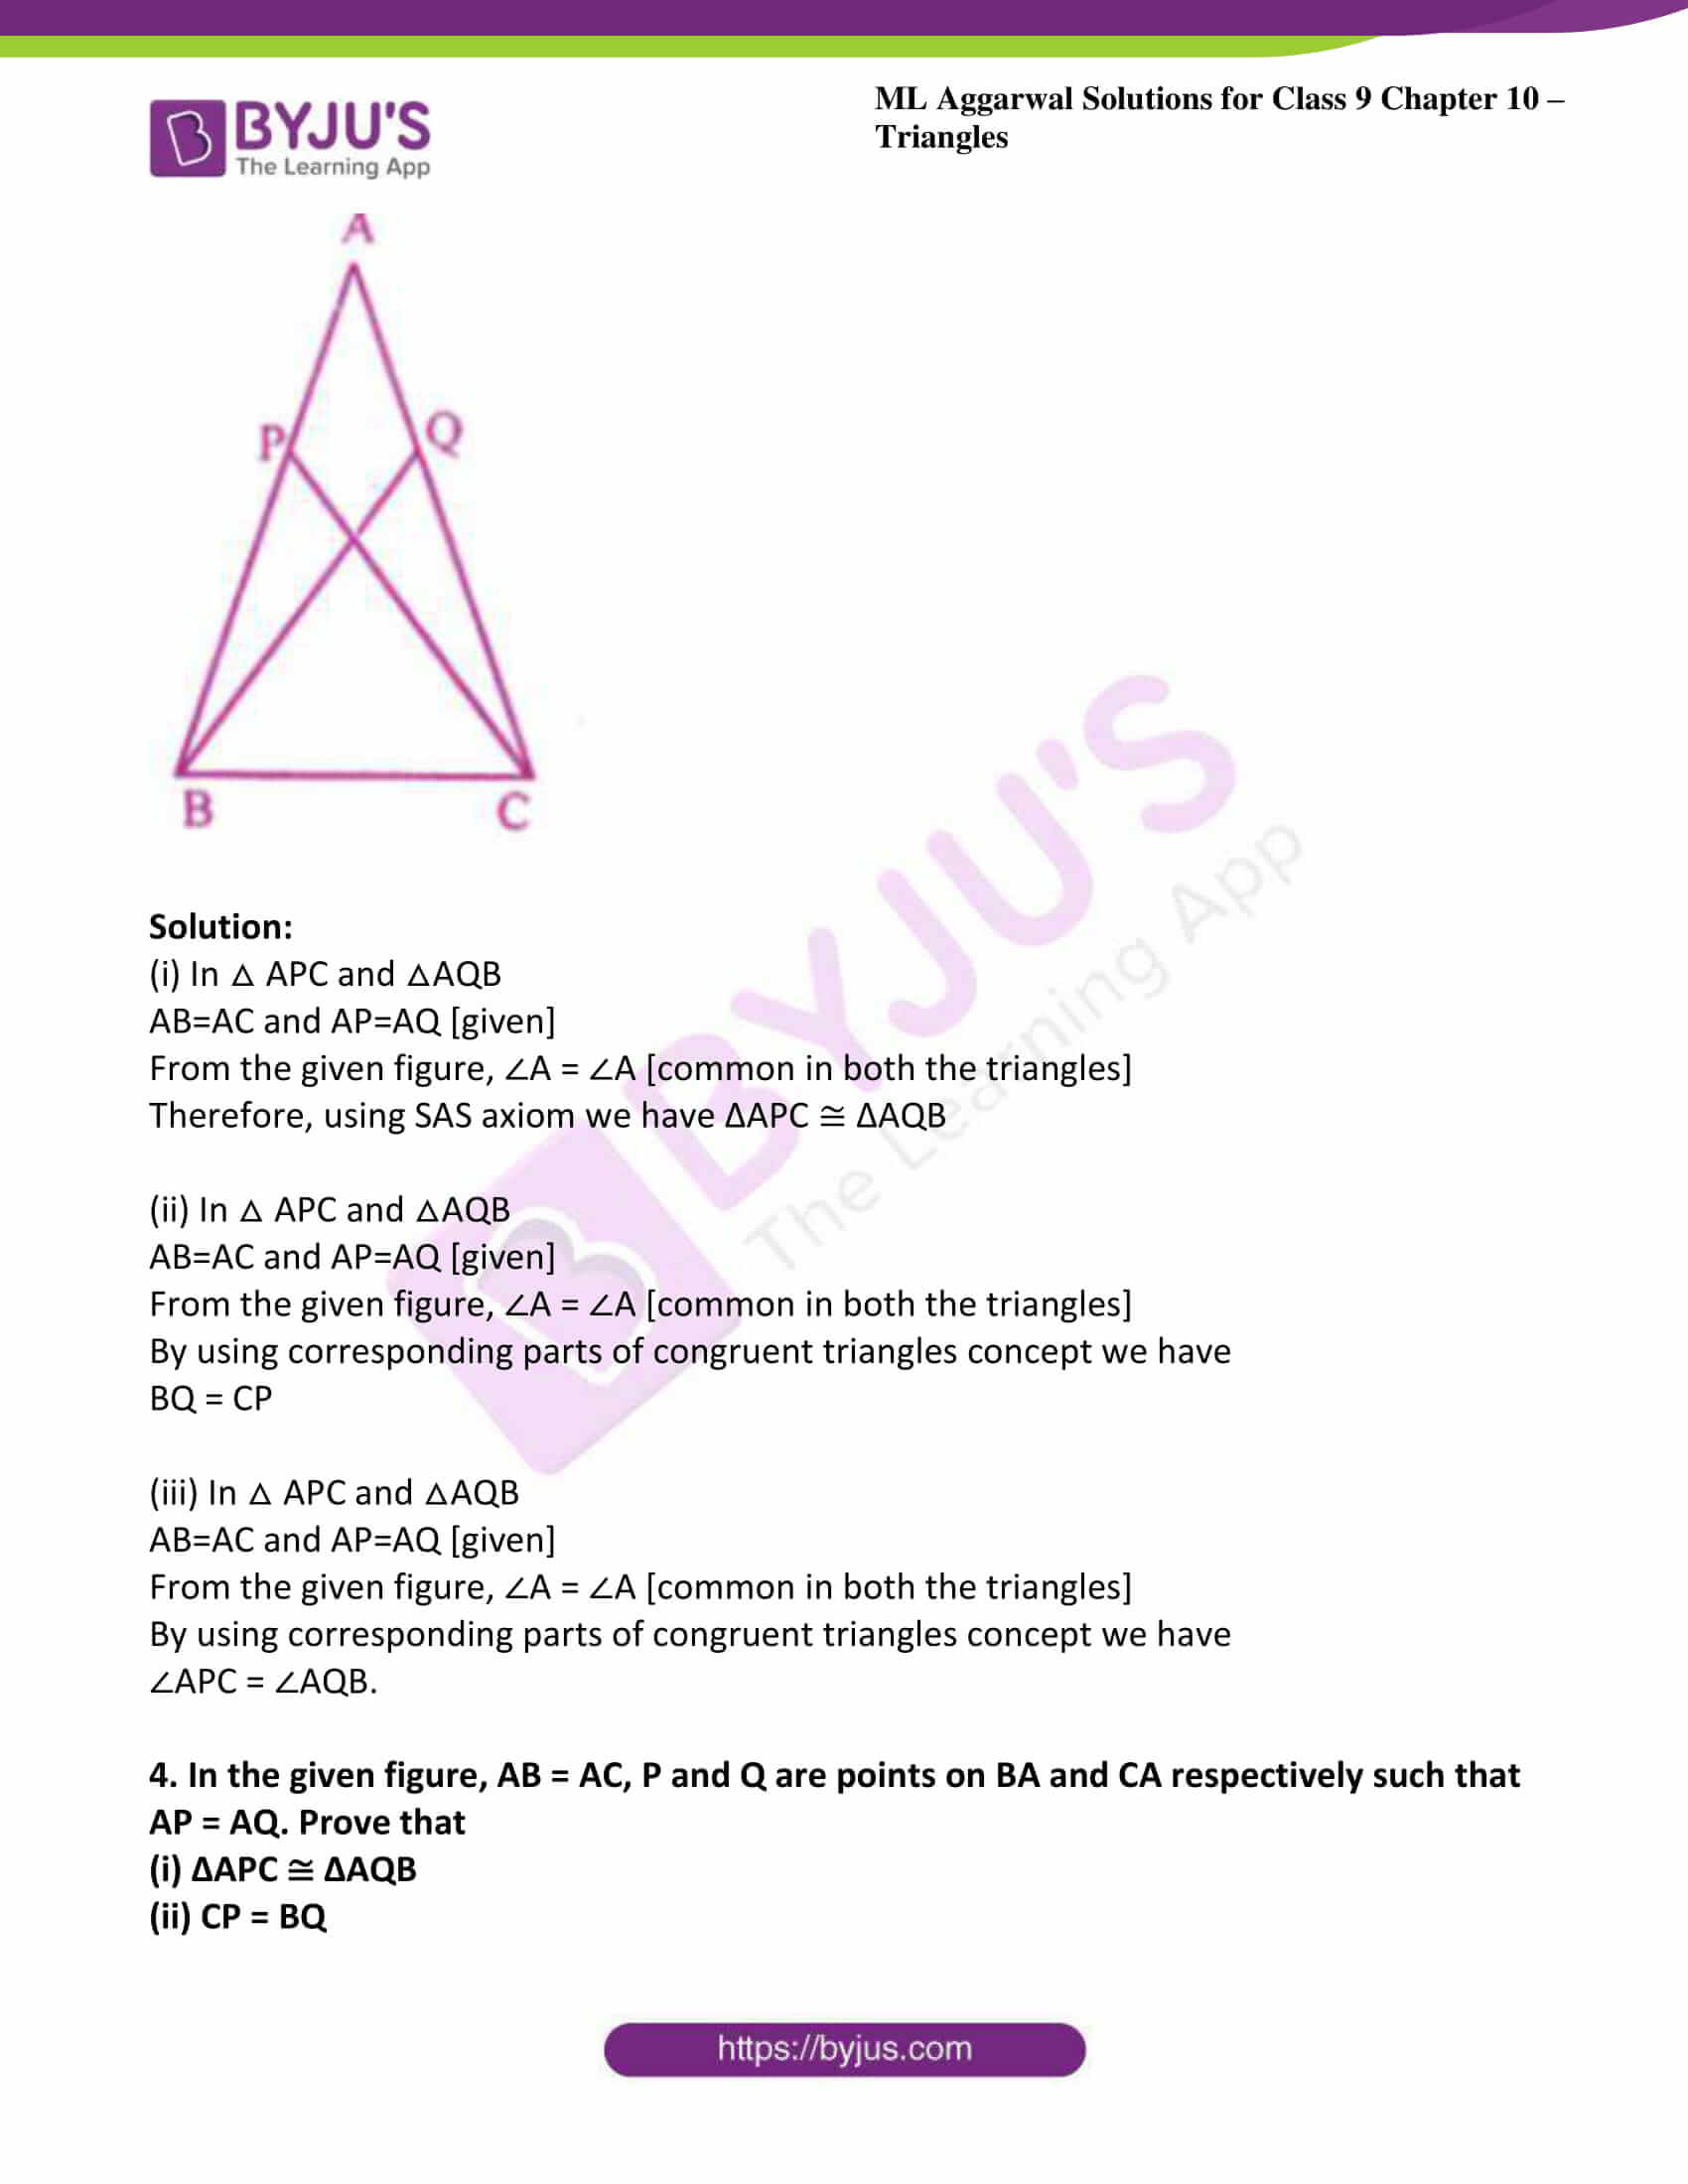 ml aggarwal solutions for class 9 maths chapter 10 02